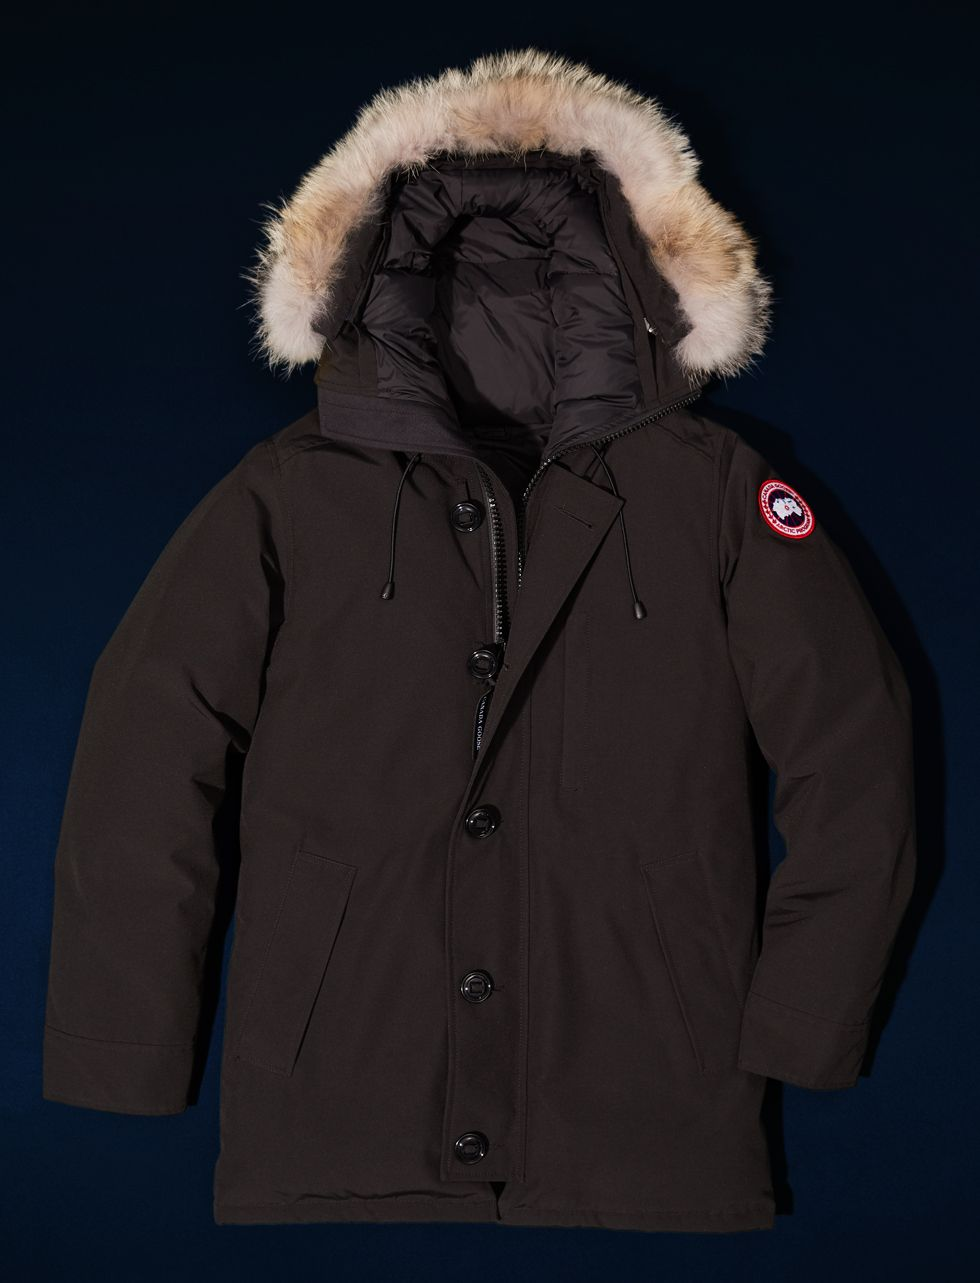 The Parka That'll Keep You Warm in (Actual) Arctic Conditions